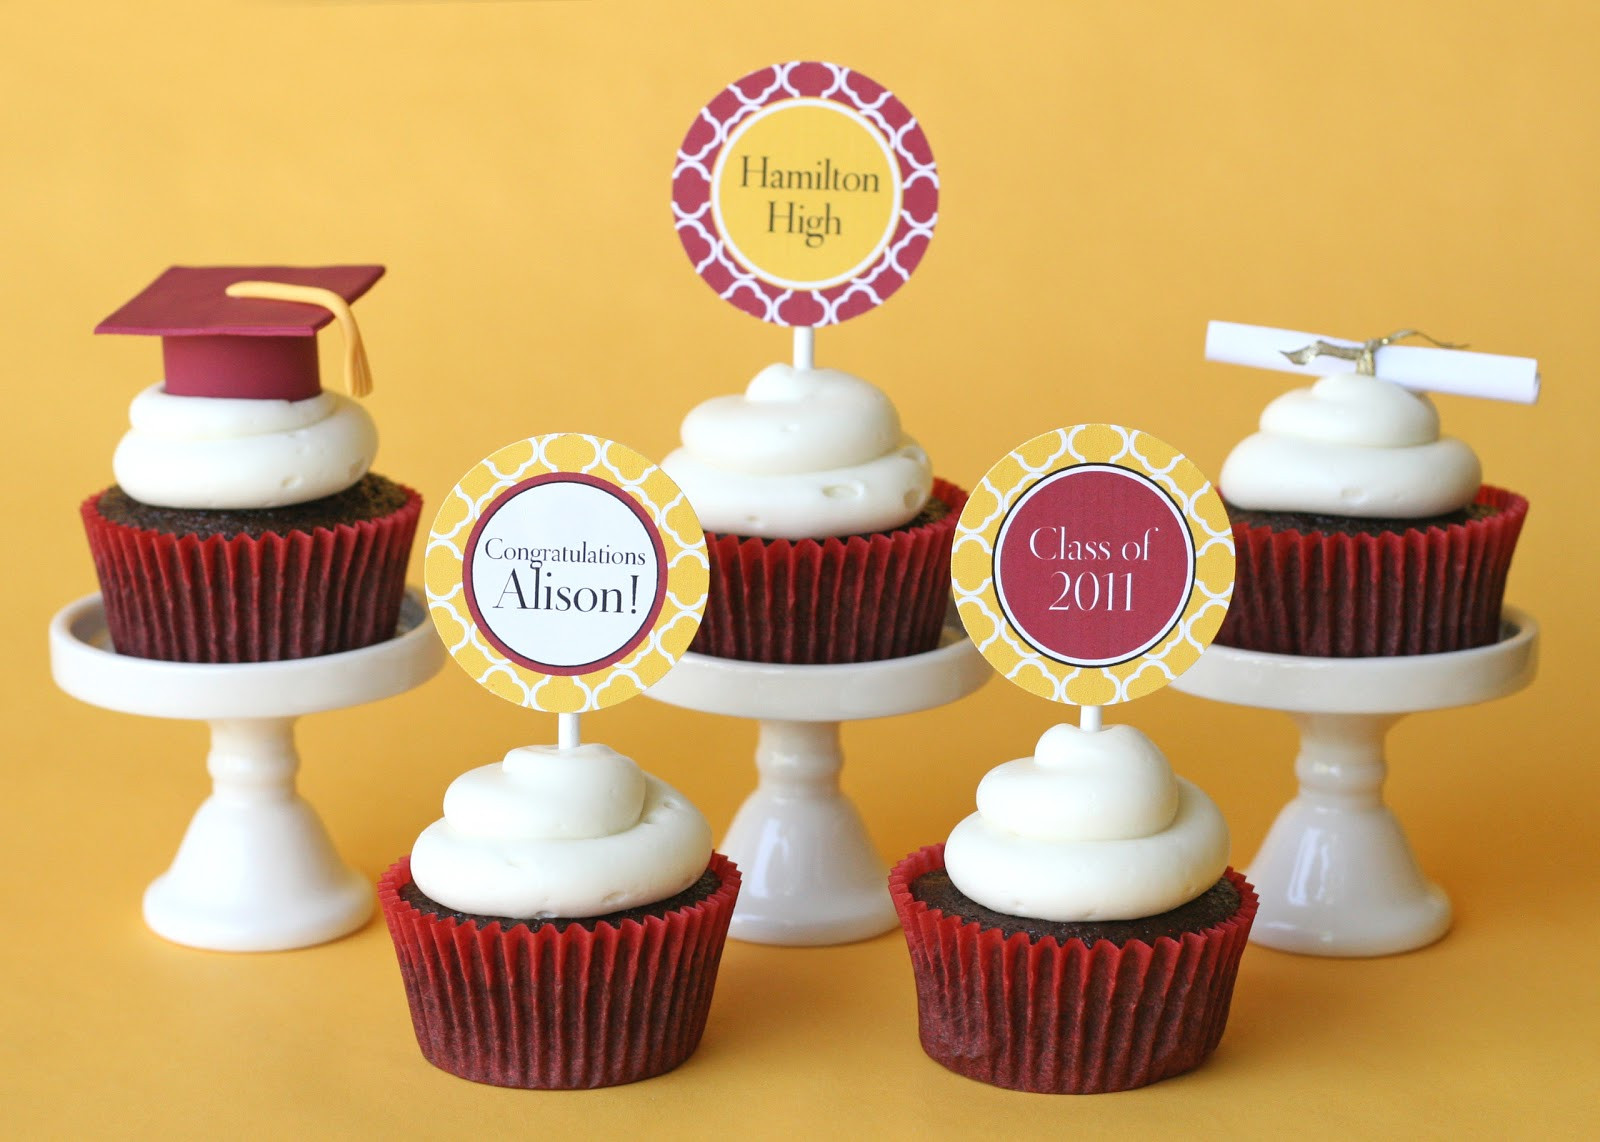 Graduation Cupcakes Decorating Ideas  Graduation Cupcakes and How To Make Fondant Graduation